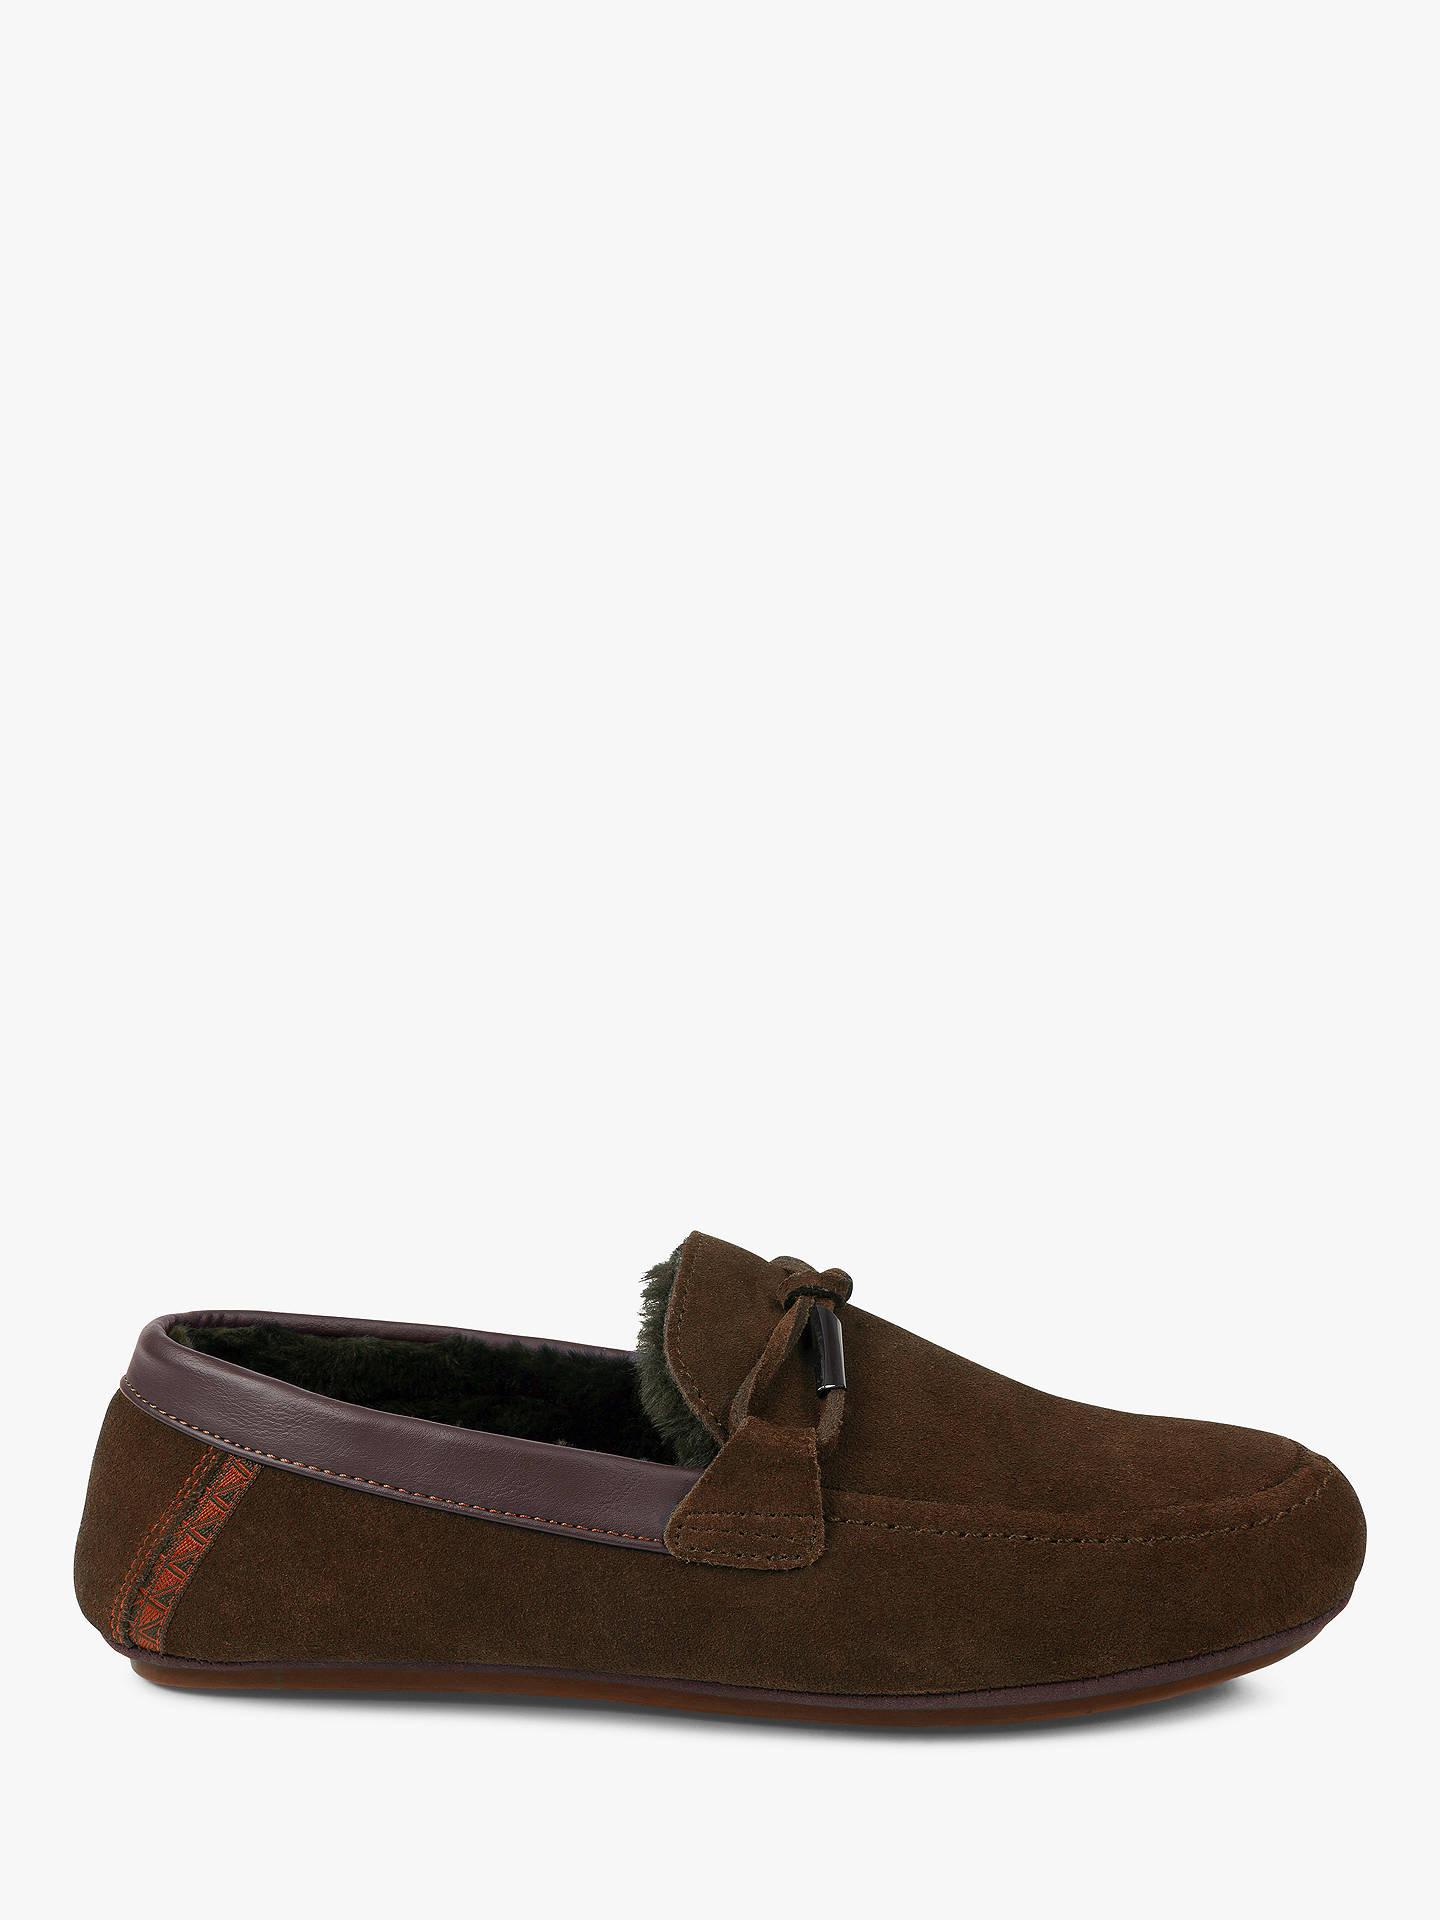 BuyTed Baker Valcent Mocassin Slippers, Brown, 7 Online at johnlewis.com